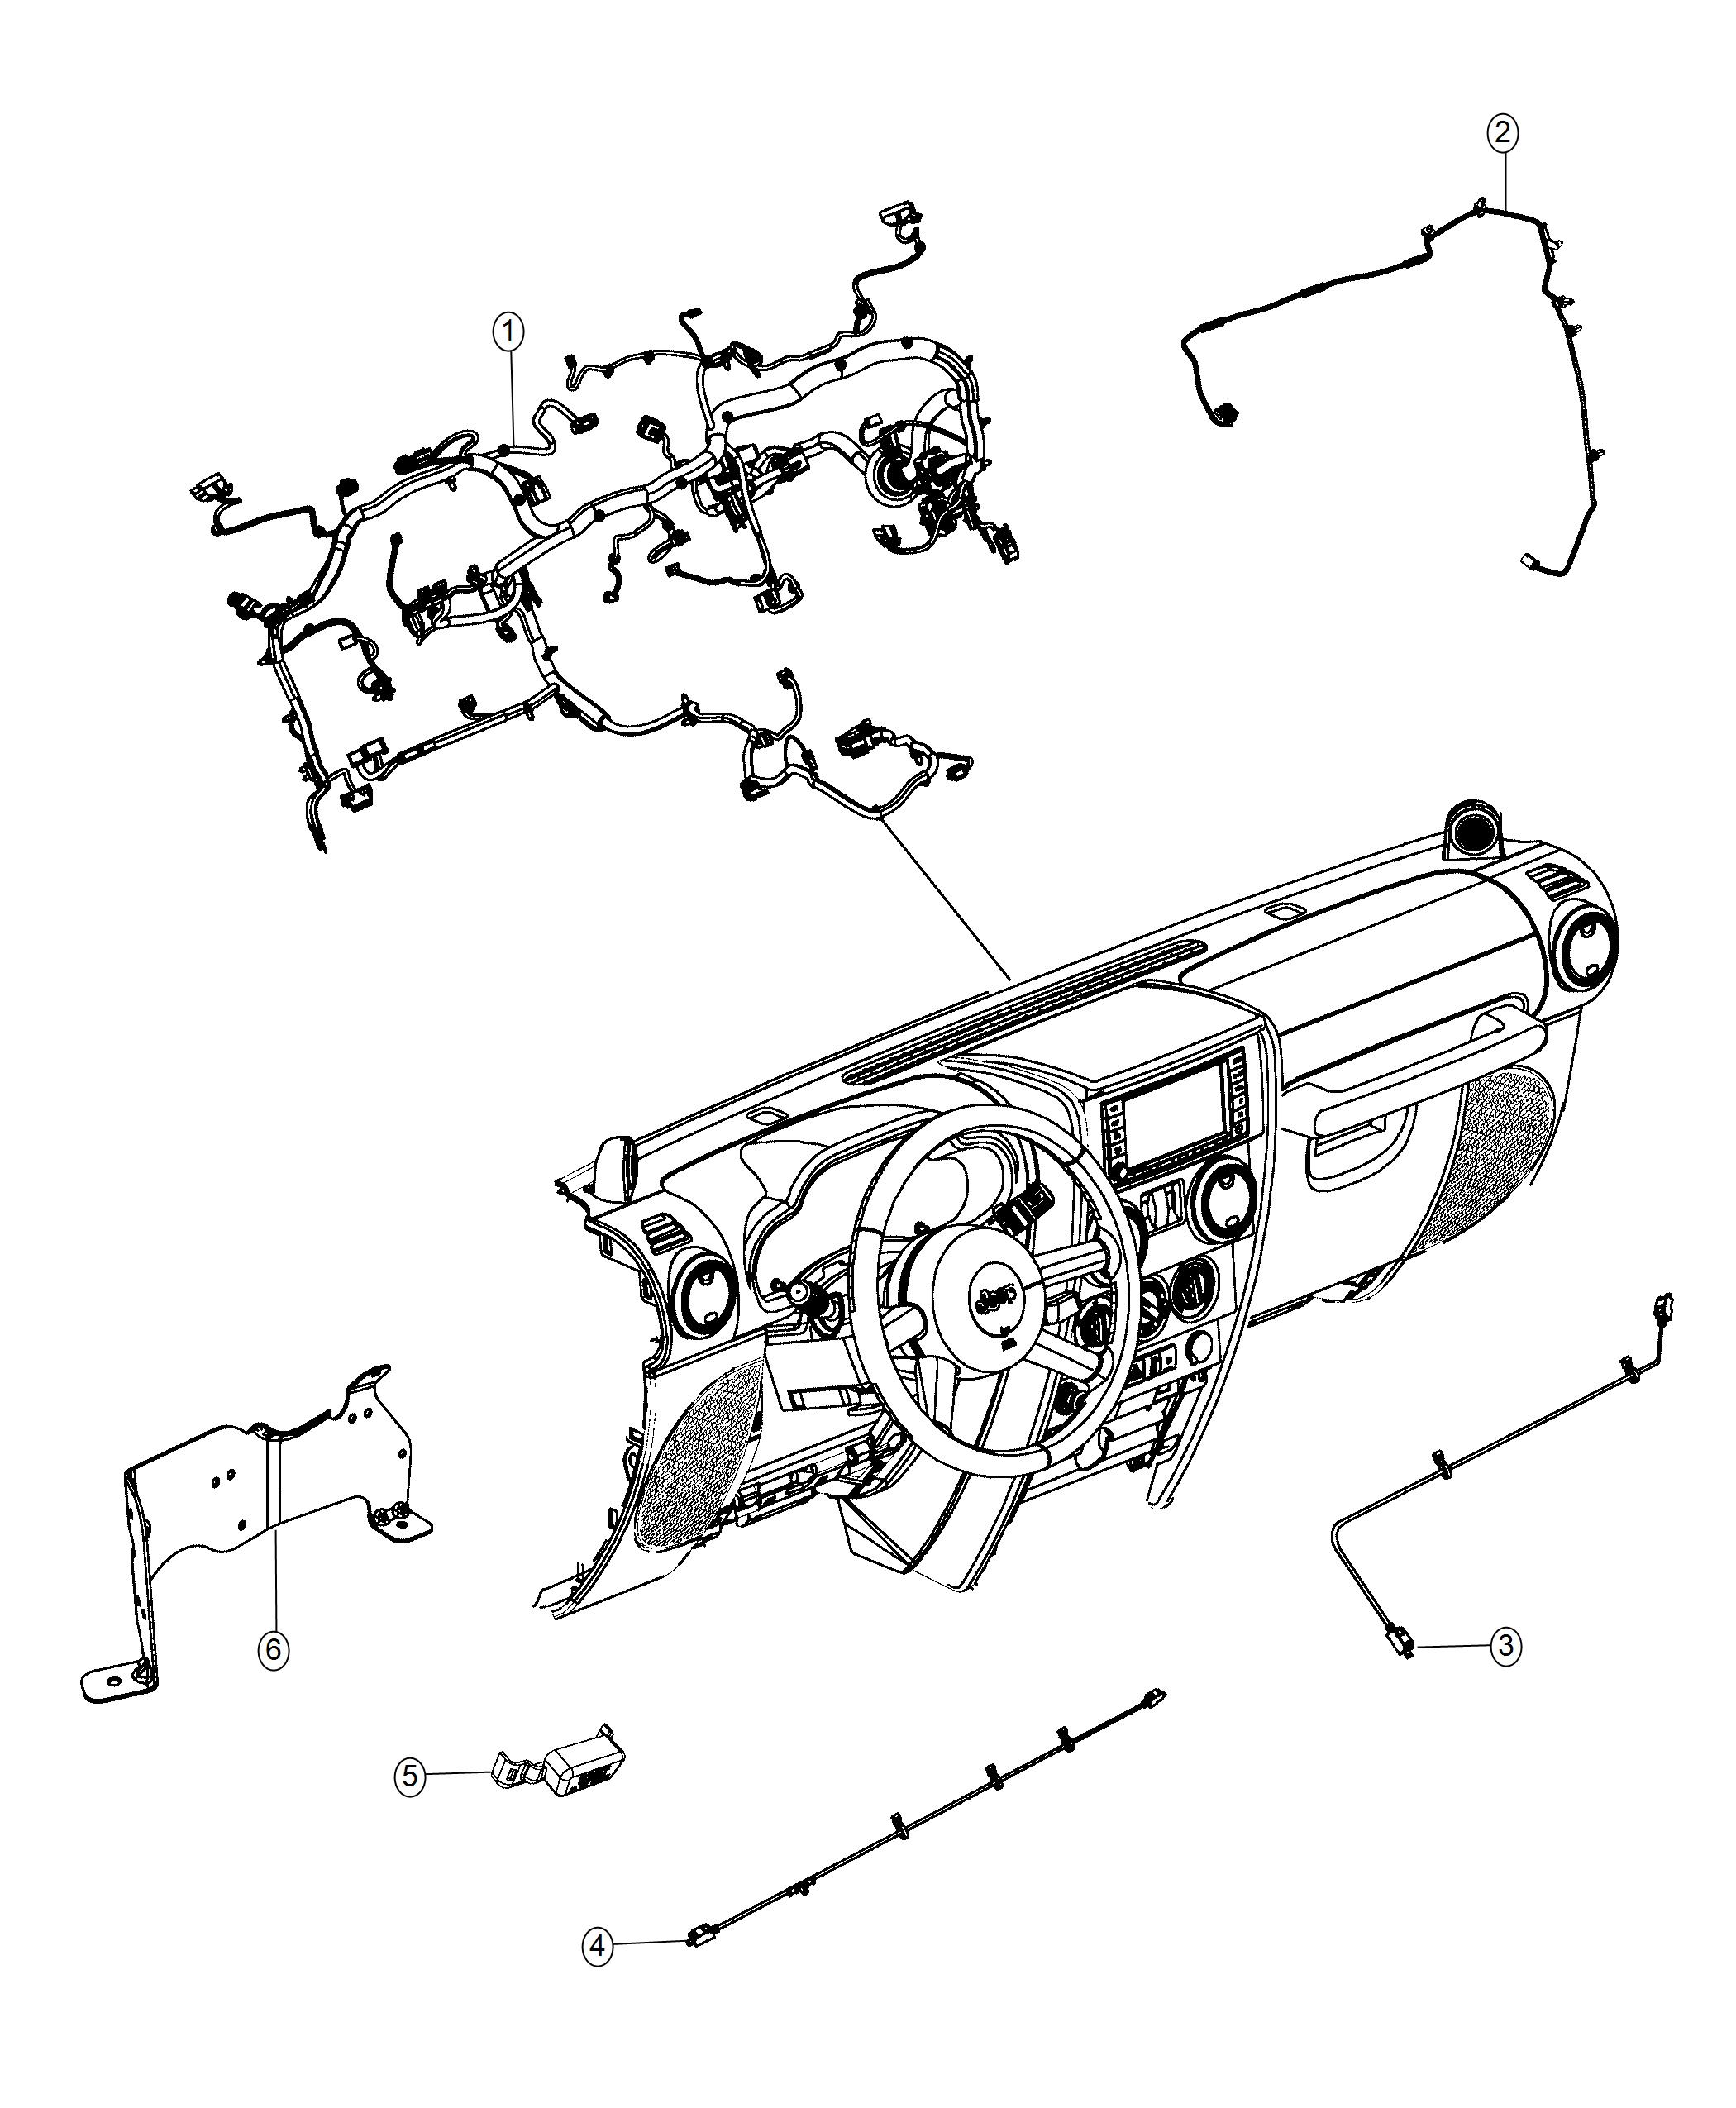 Diagram Jeep Wrangler Uconnect Wiring Diagram Full